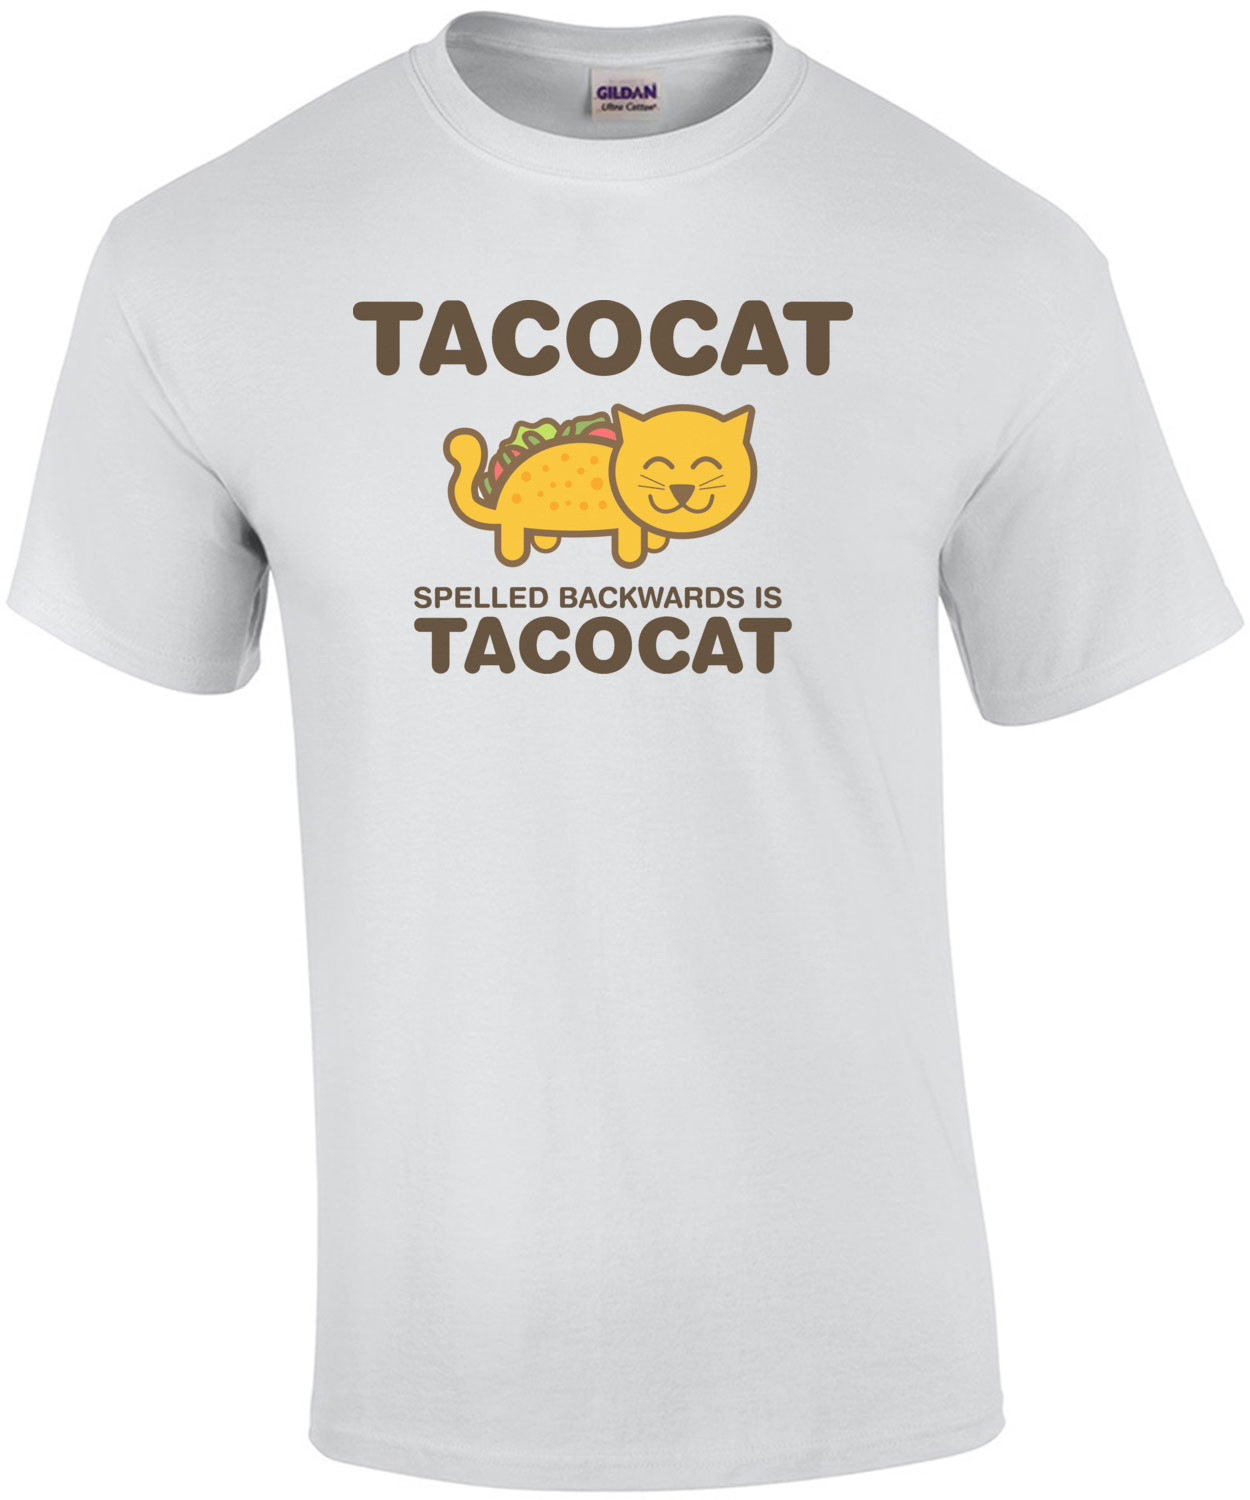 Tacocat spelled backwards is Tacocat